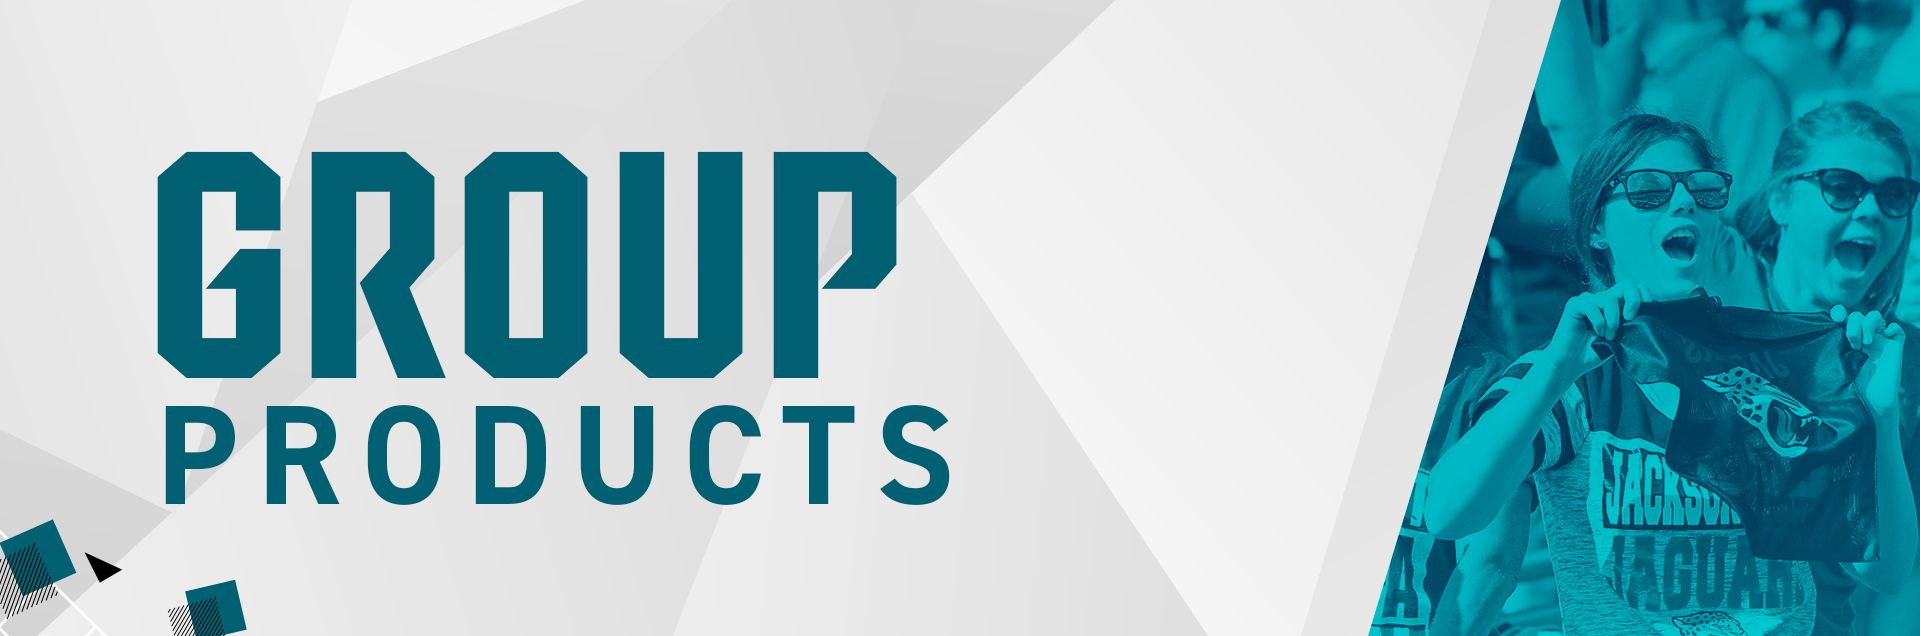 productsgroup